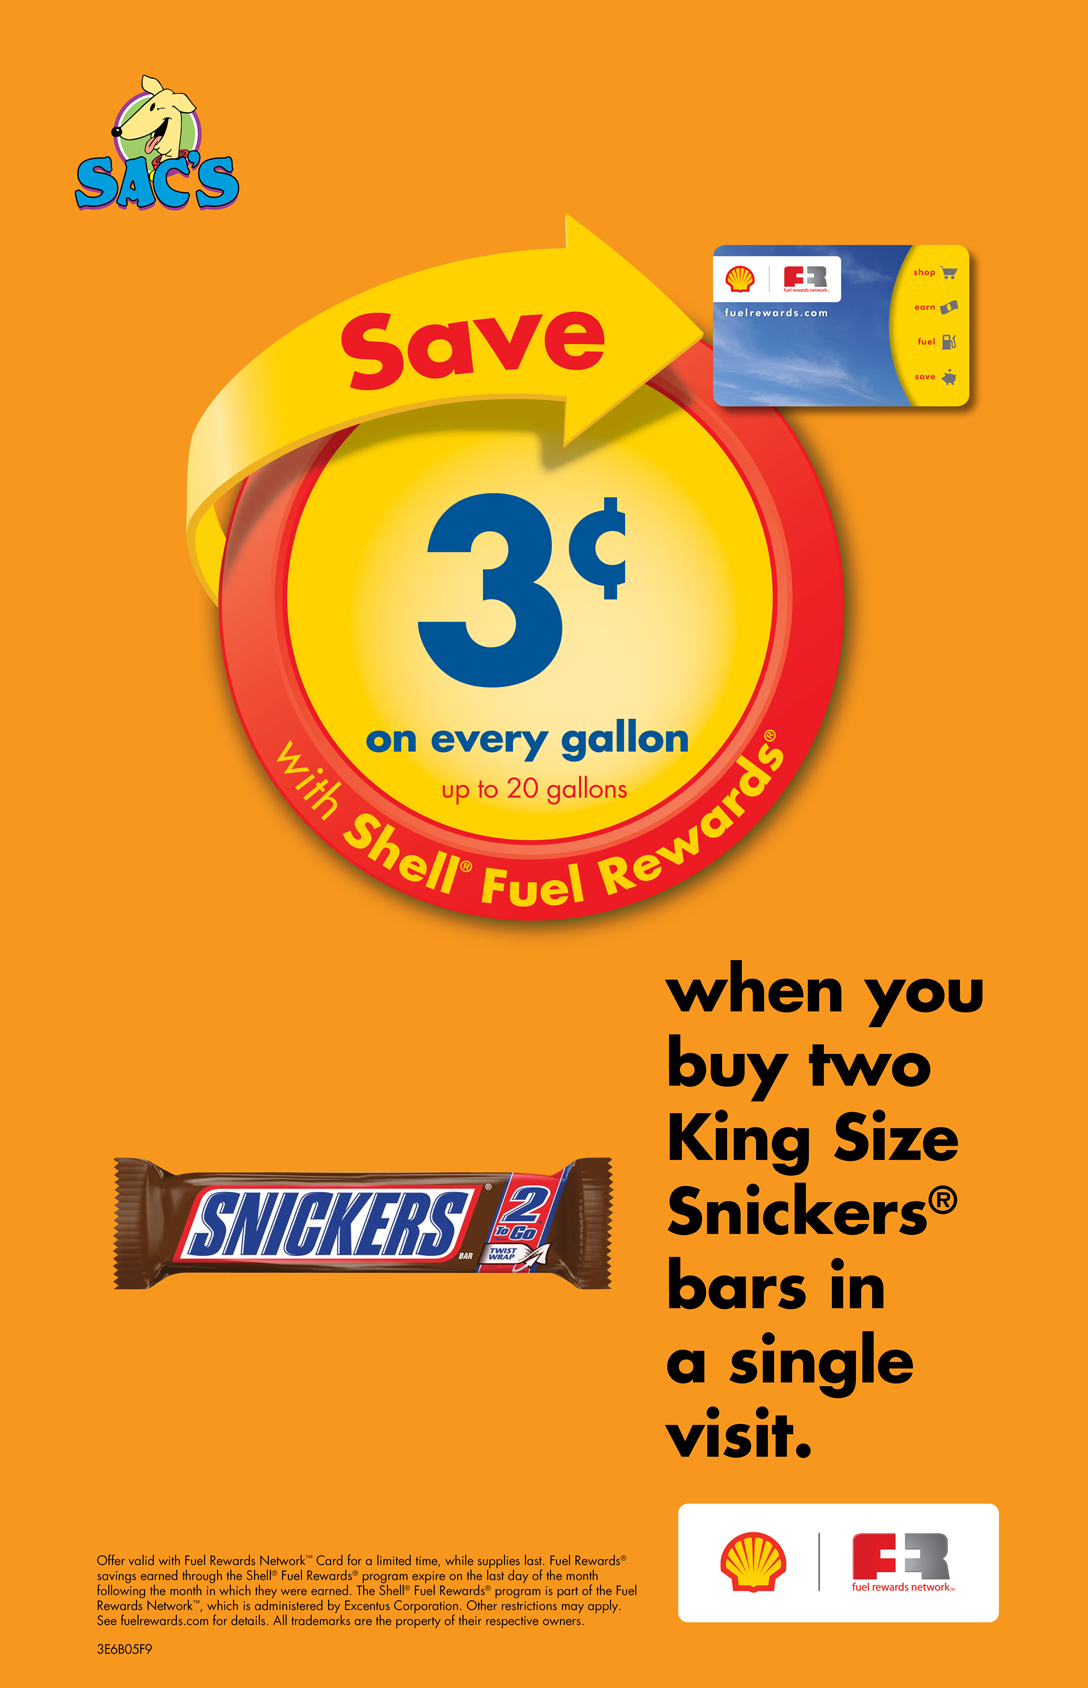 Save 3 cents per gallon when you buy two king size Snickers